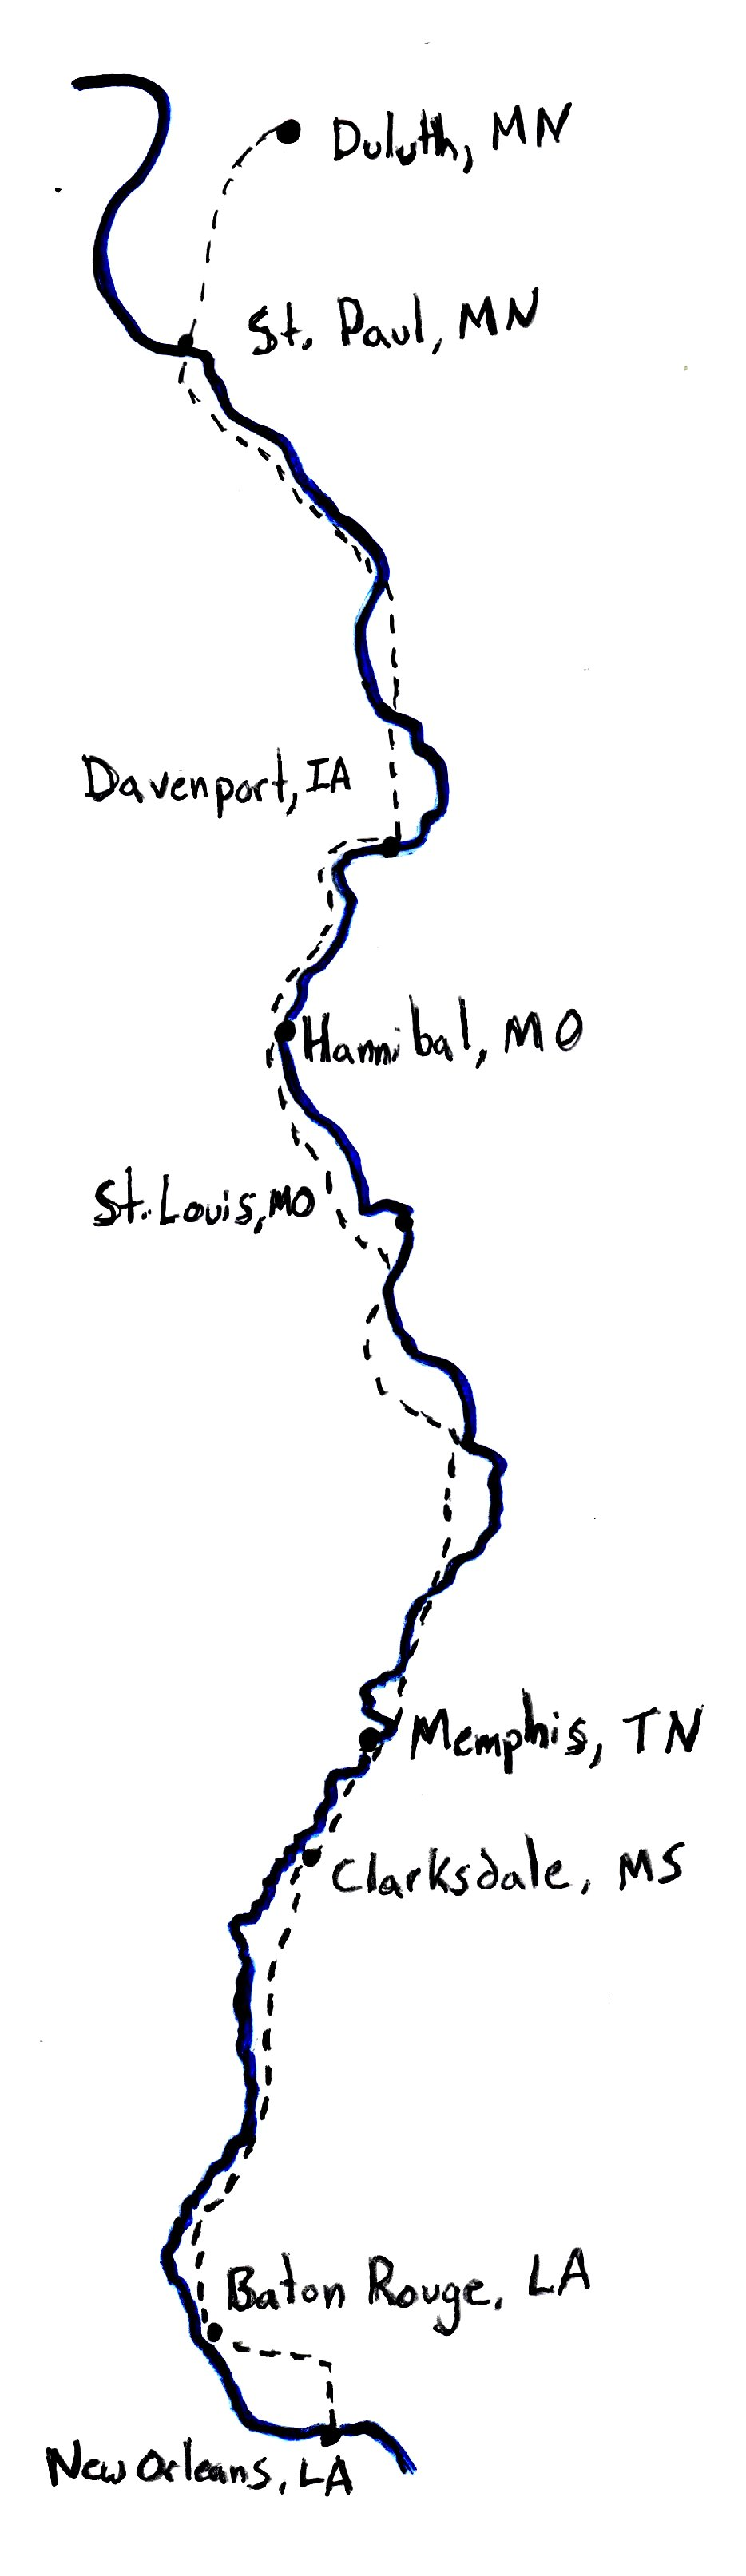 25. Driving Route.jpg